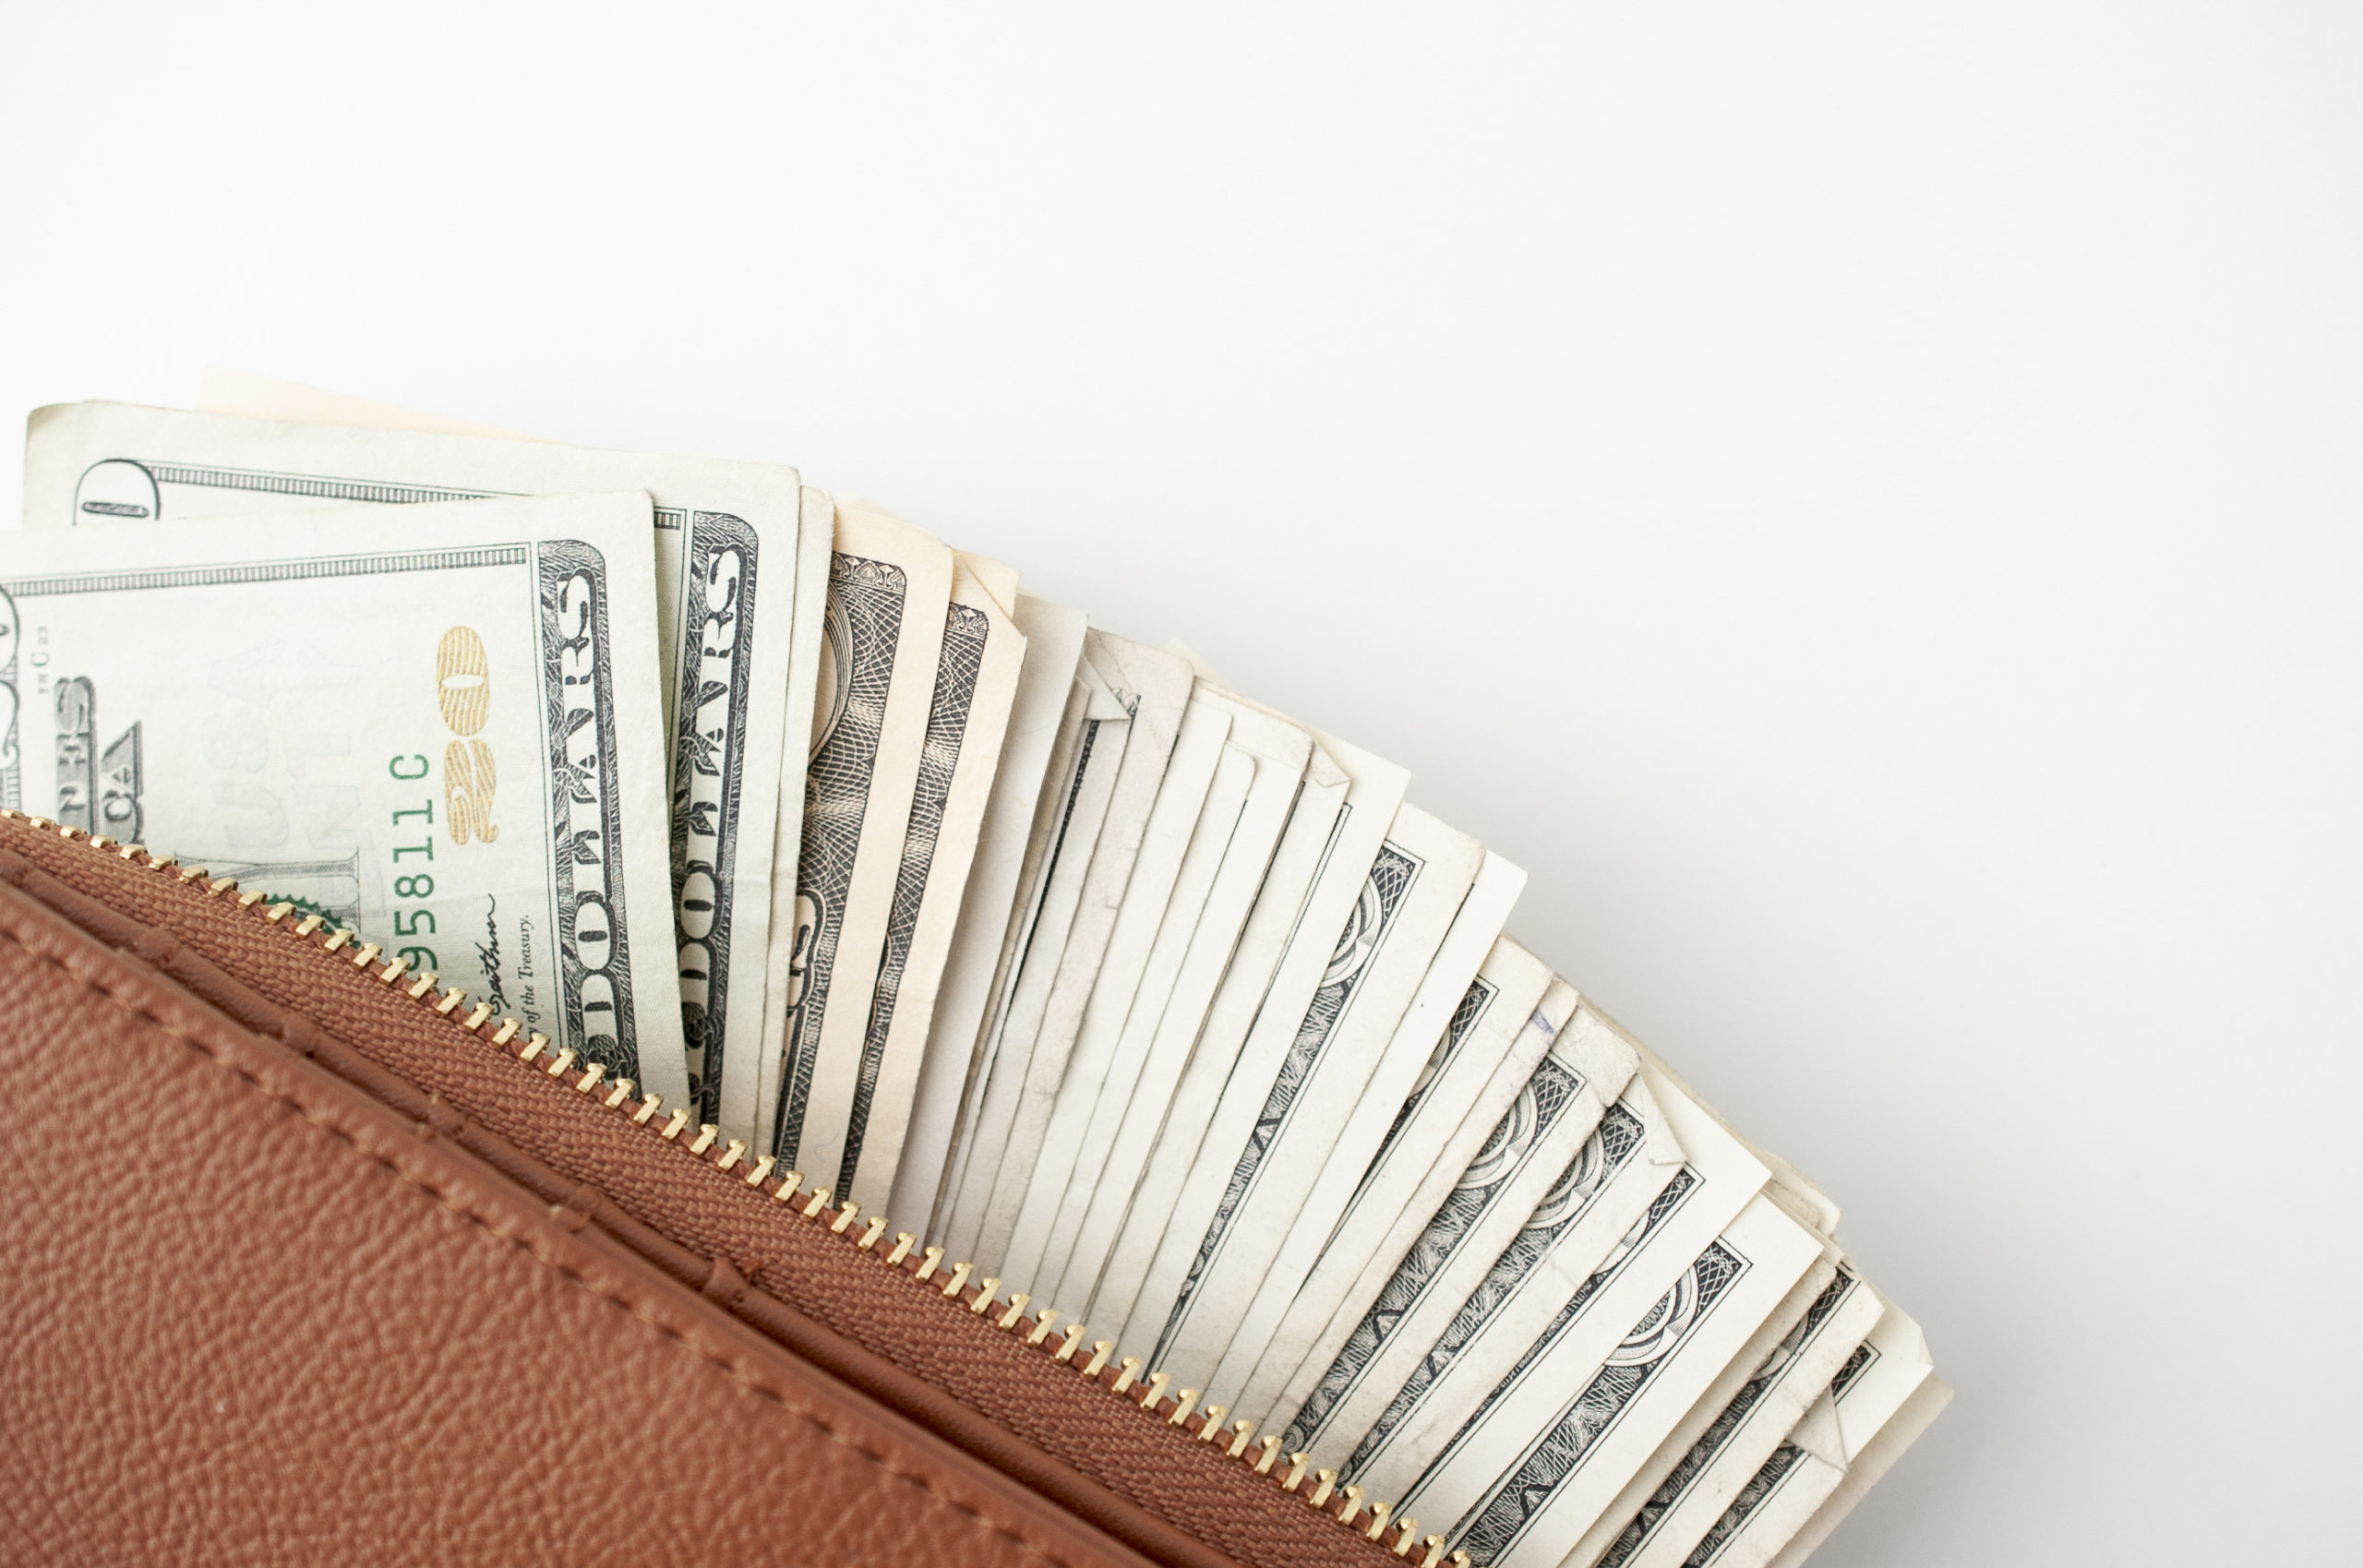 10 Easy Tips to Save More Money That You Can Apply Everyday